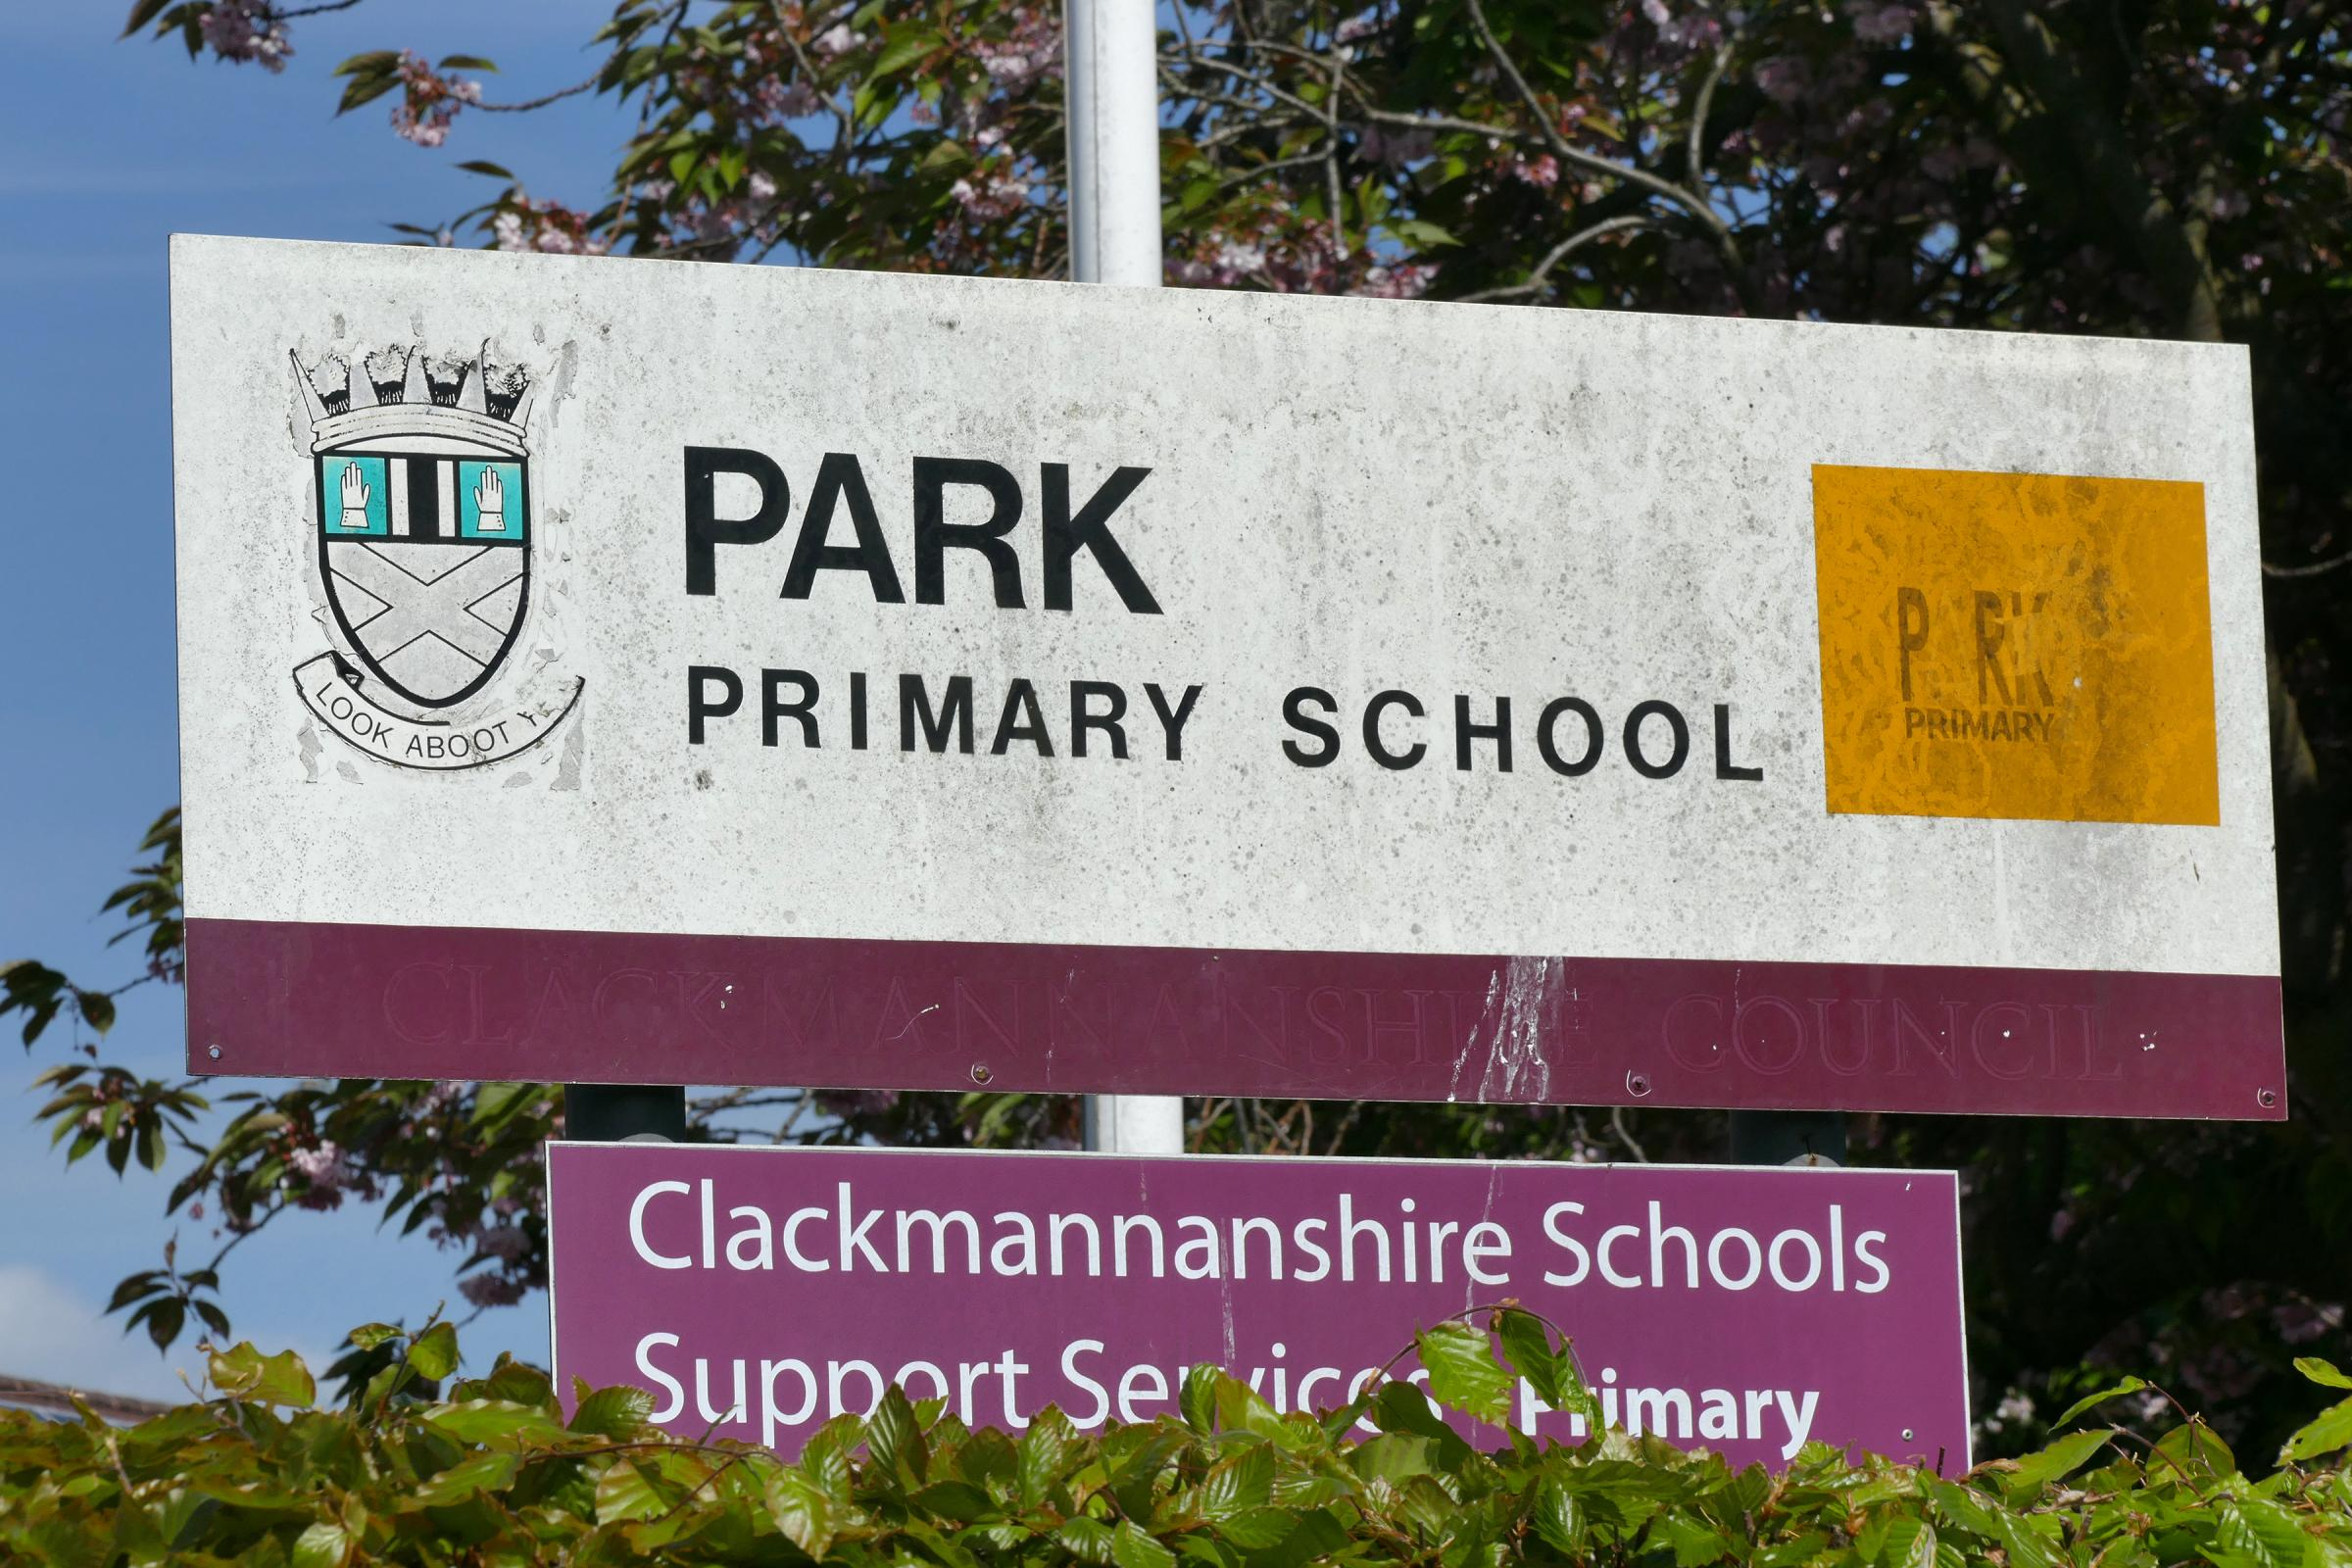 The initiative has been launched at Park Primary School